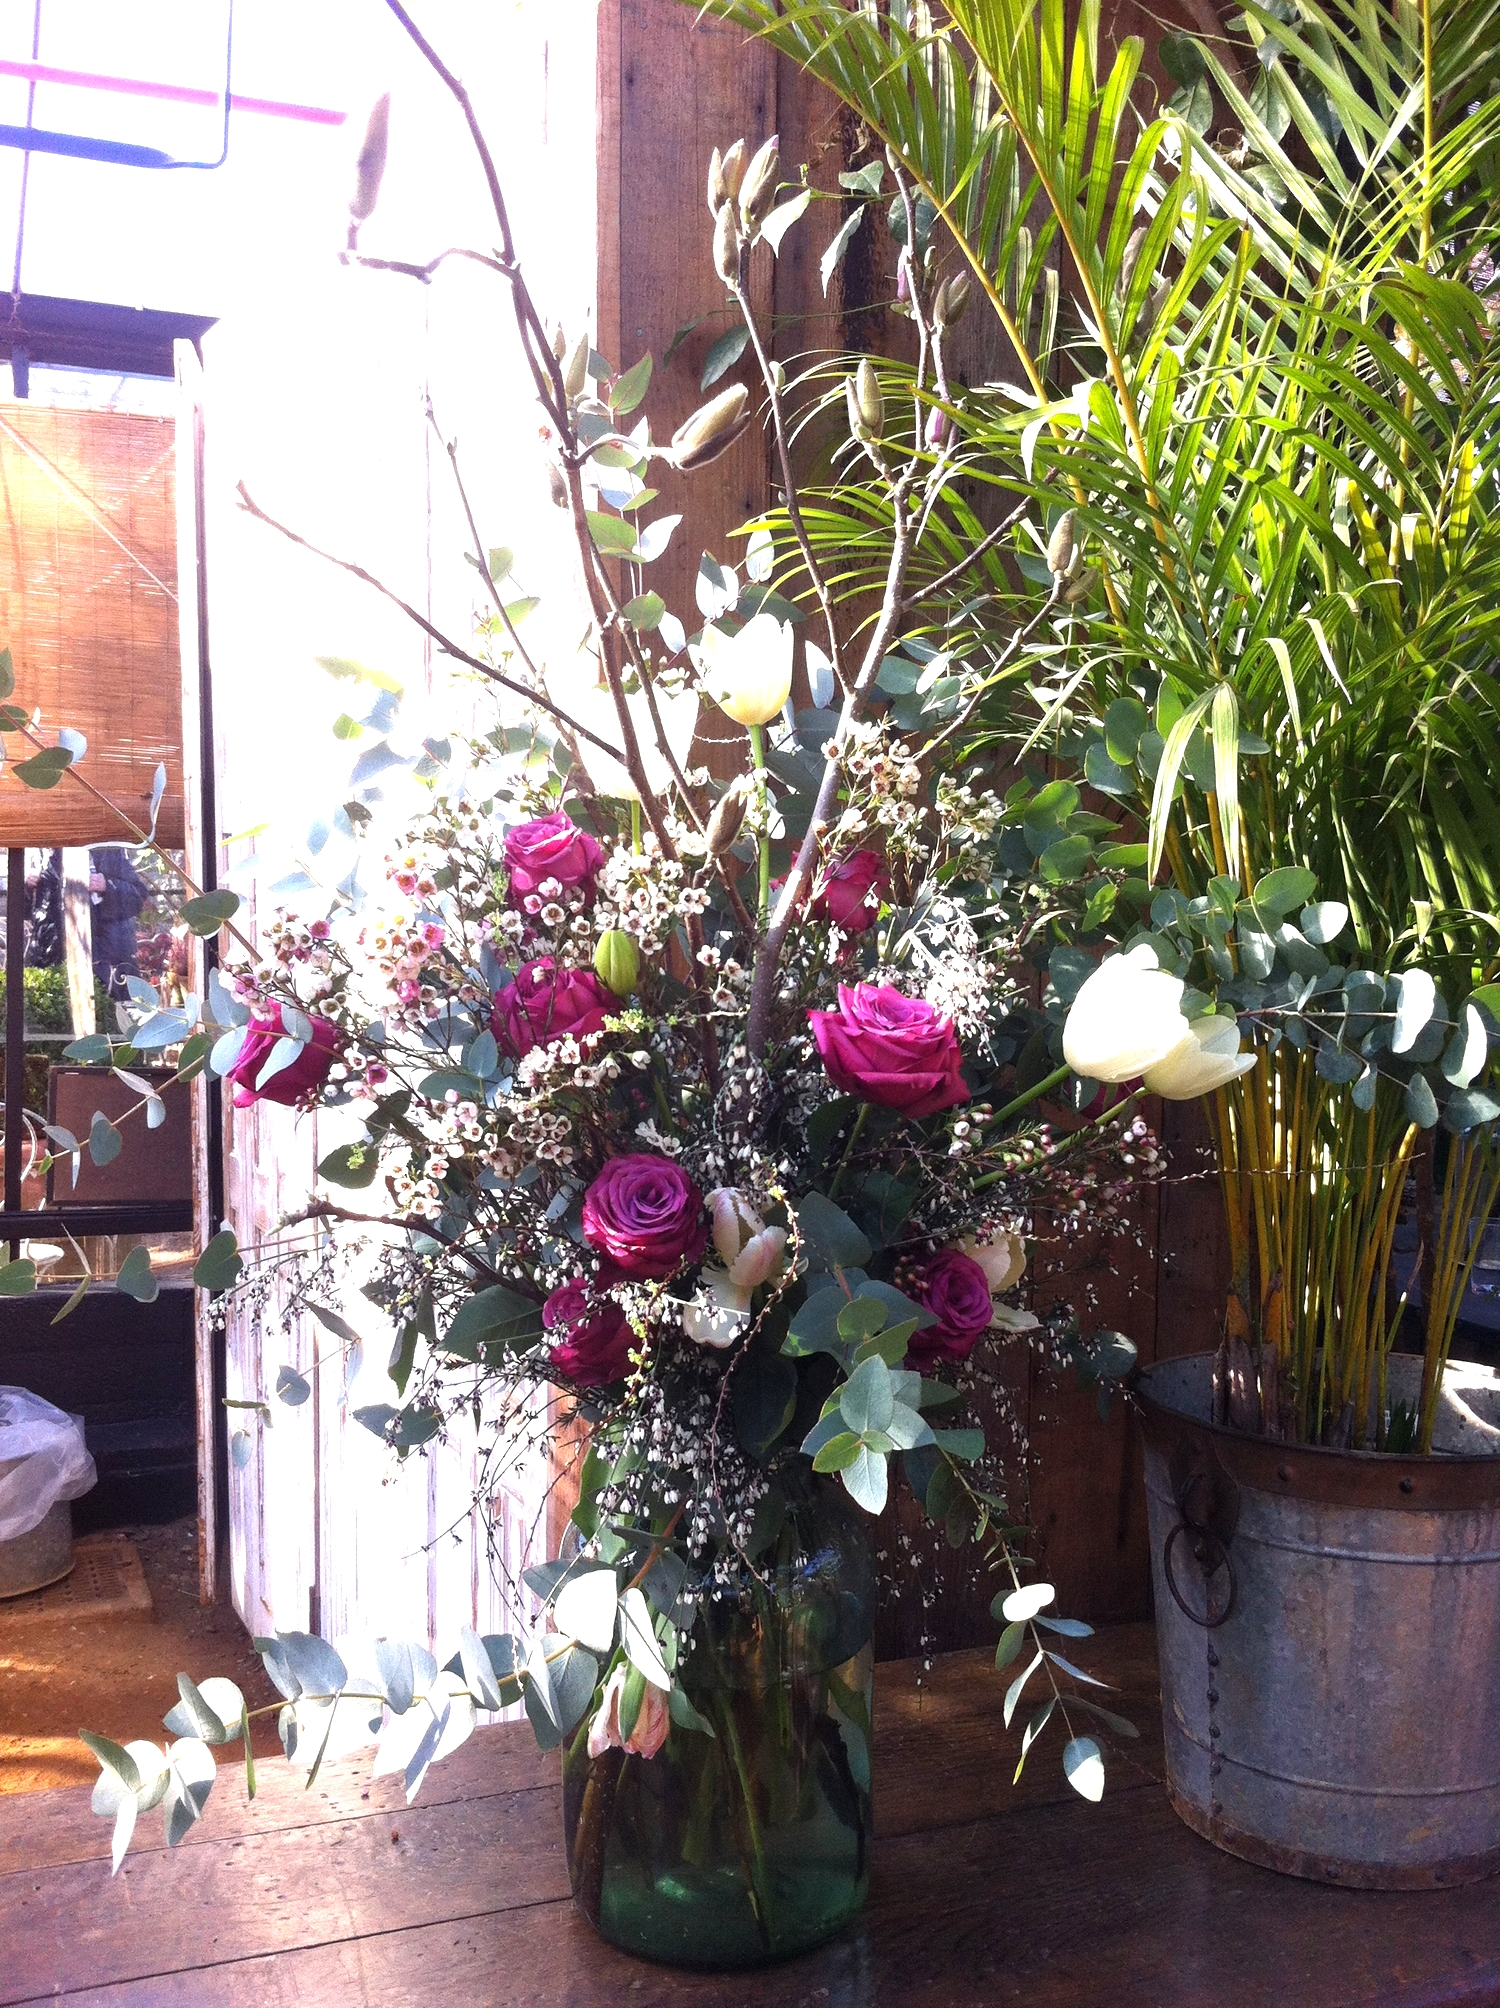 This stunning floral arrangement is in the Michelin star restaurant located in the same glasshouse as the shop